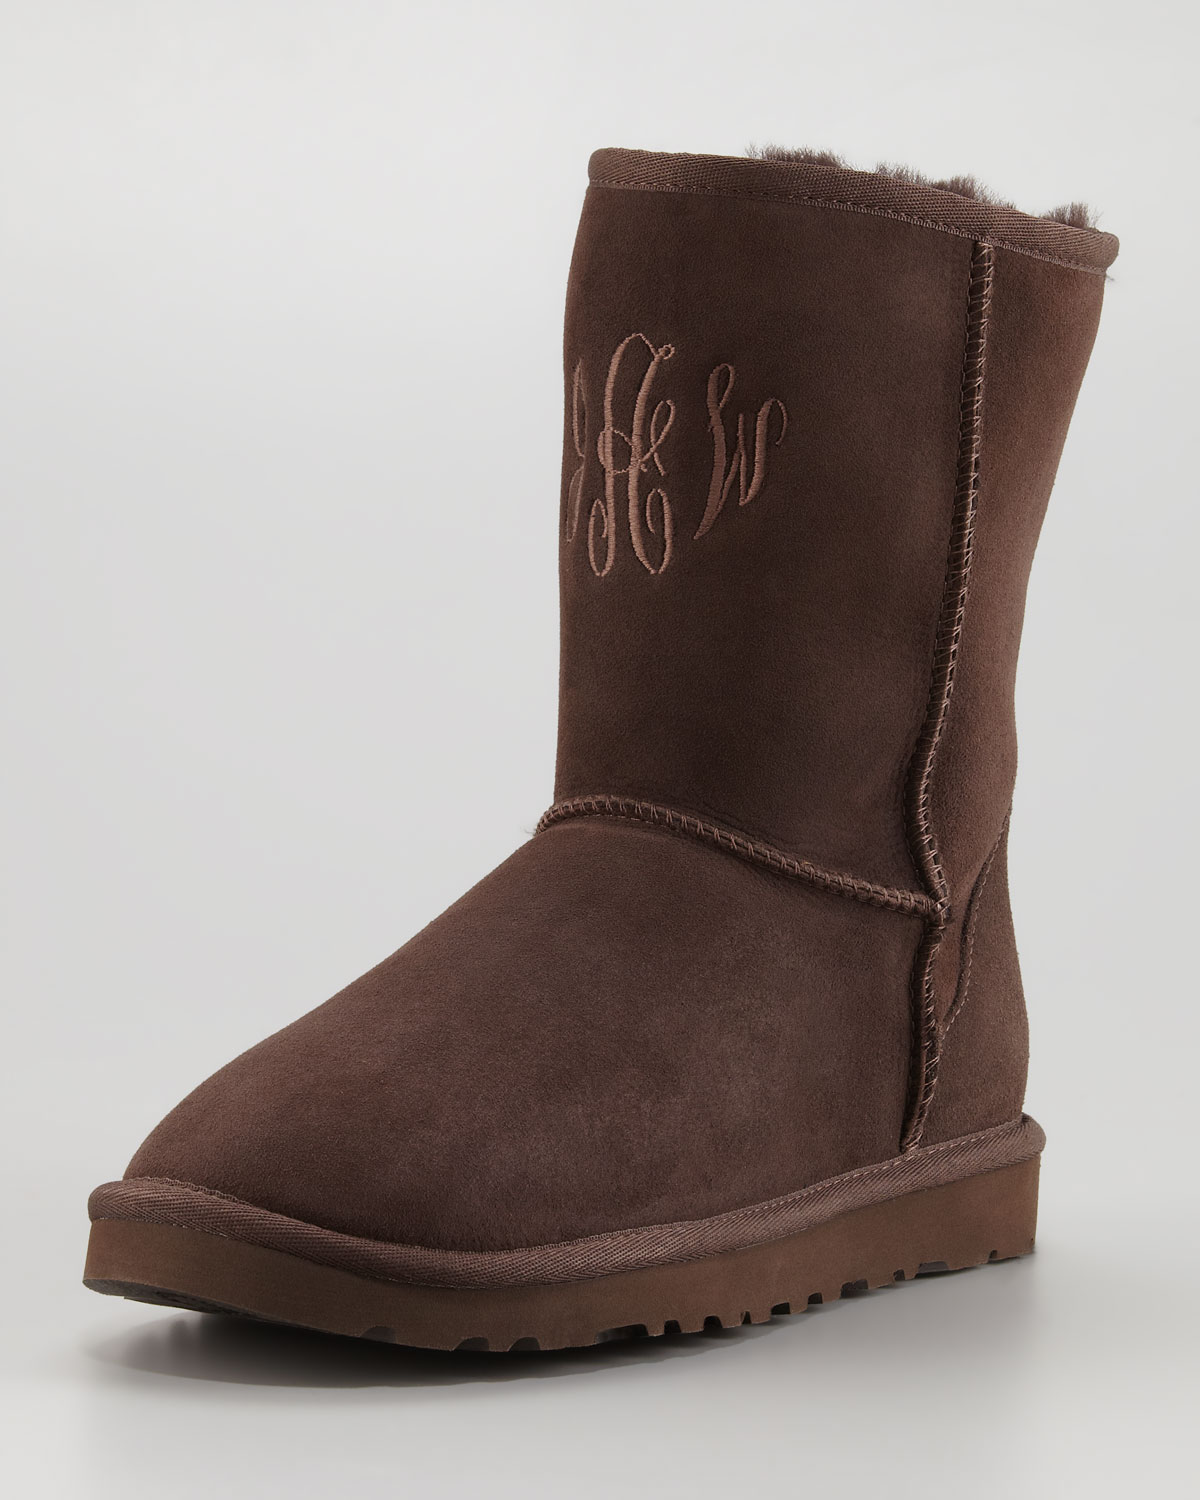 classic ugg boots 2013 reviews. Black Bedroom Furniture Sets. Home Design Ideas